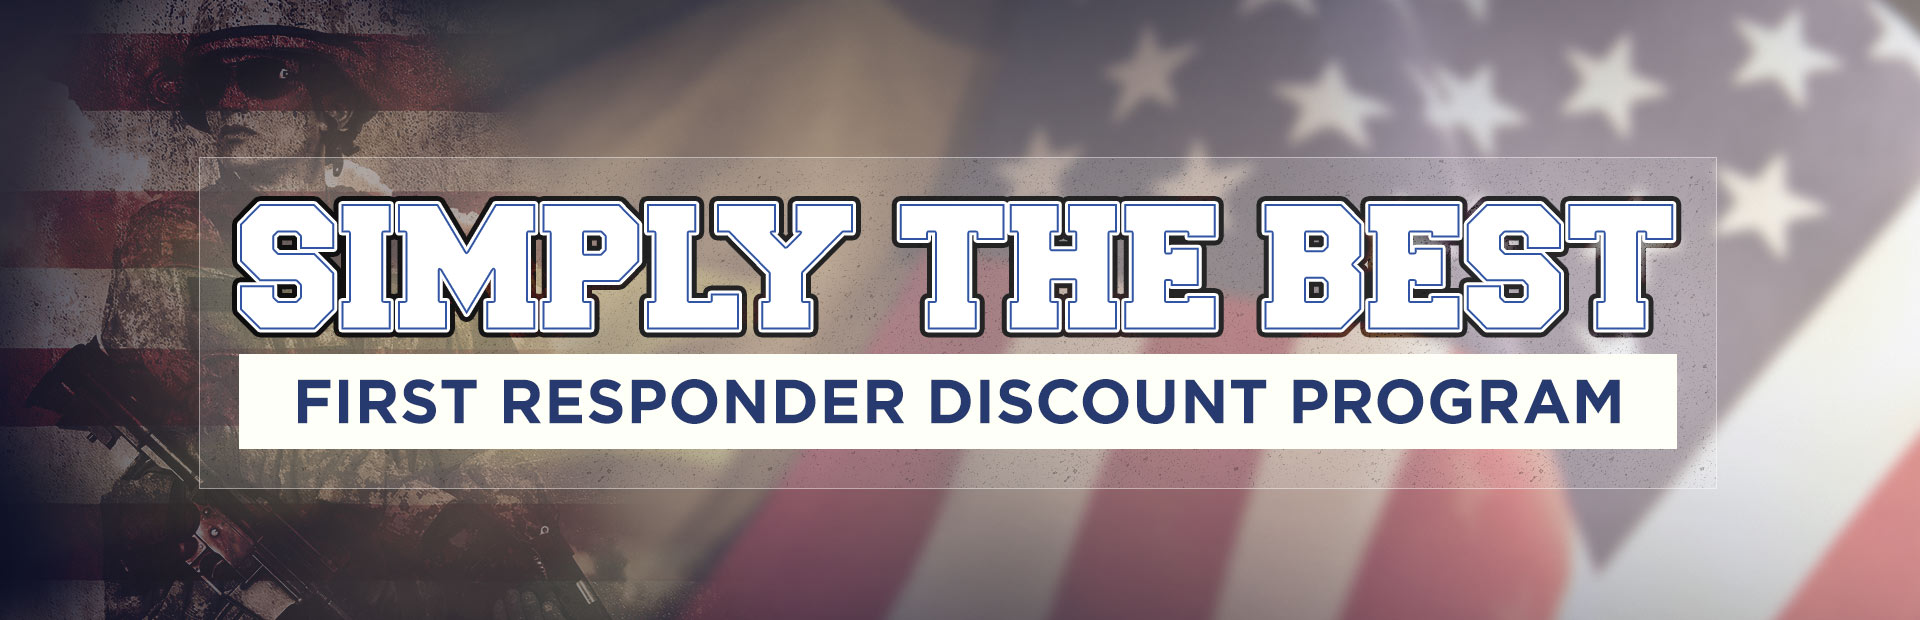 Scag First Responder Discount Program: Click here for details.